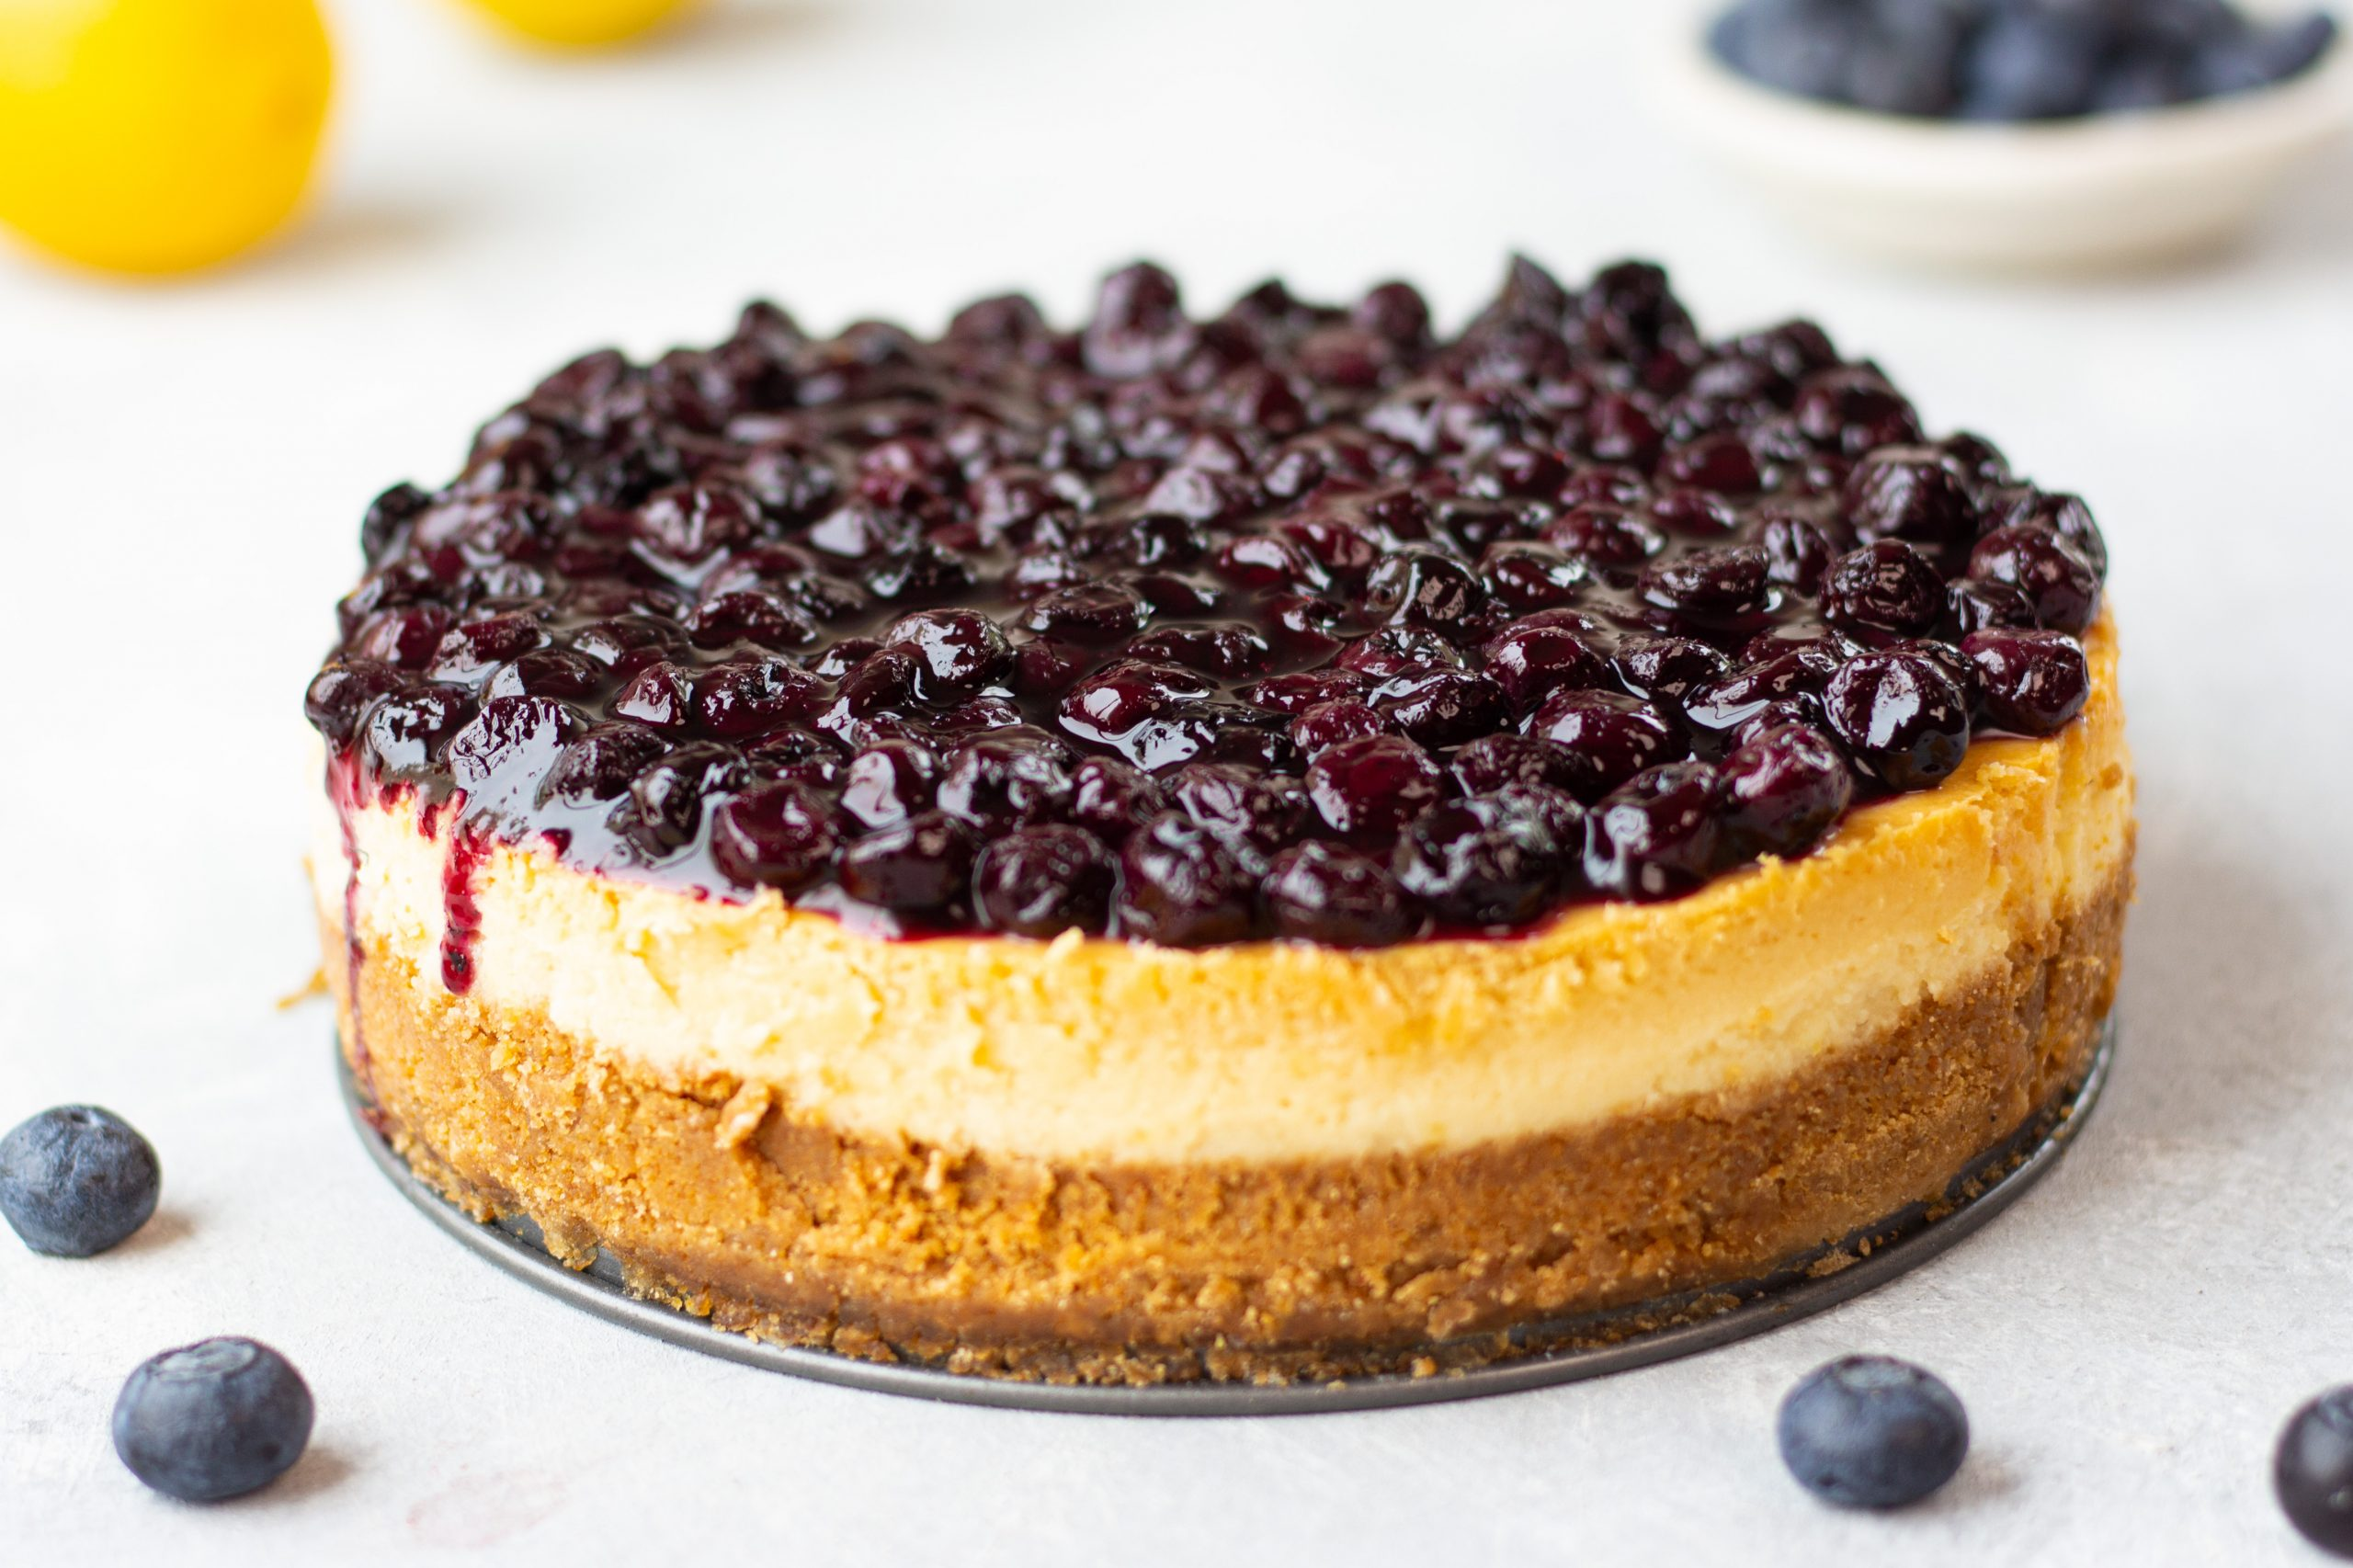 blueberry compote from scratch